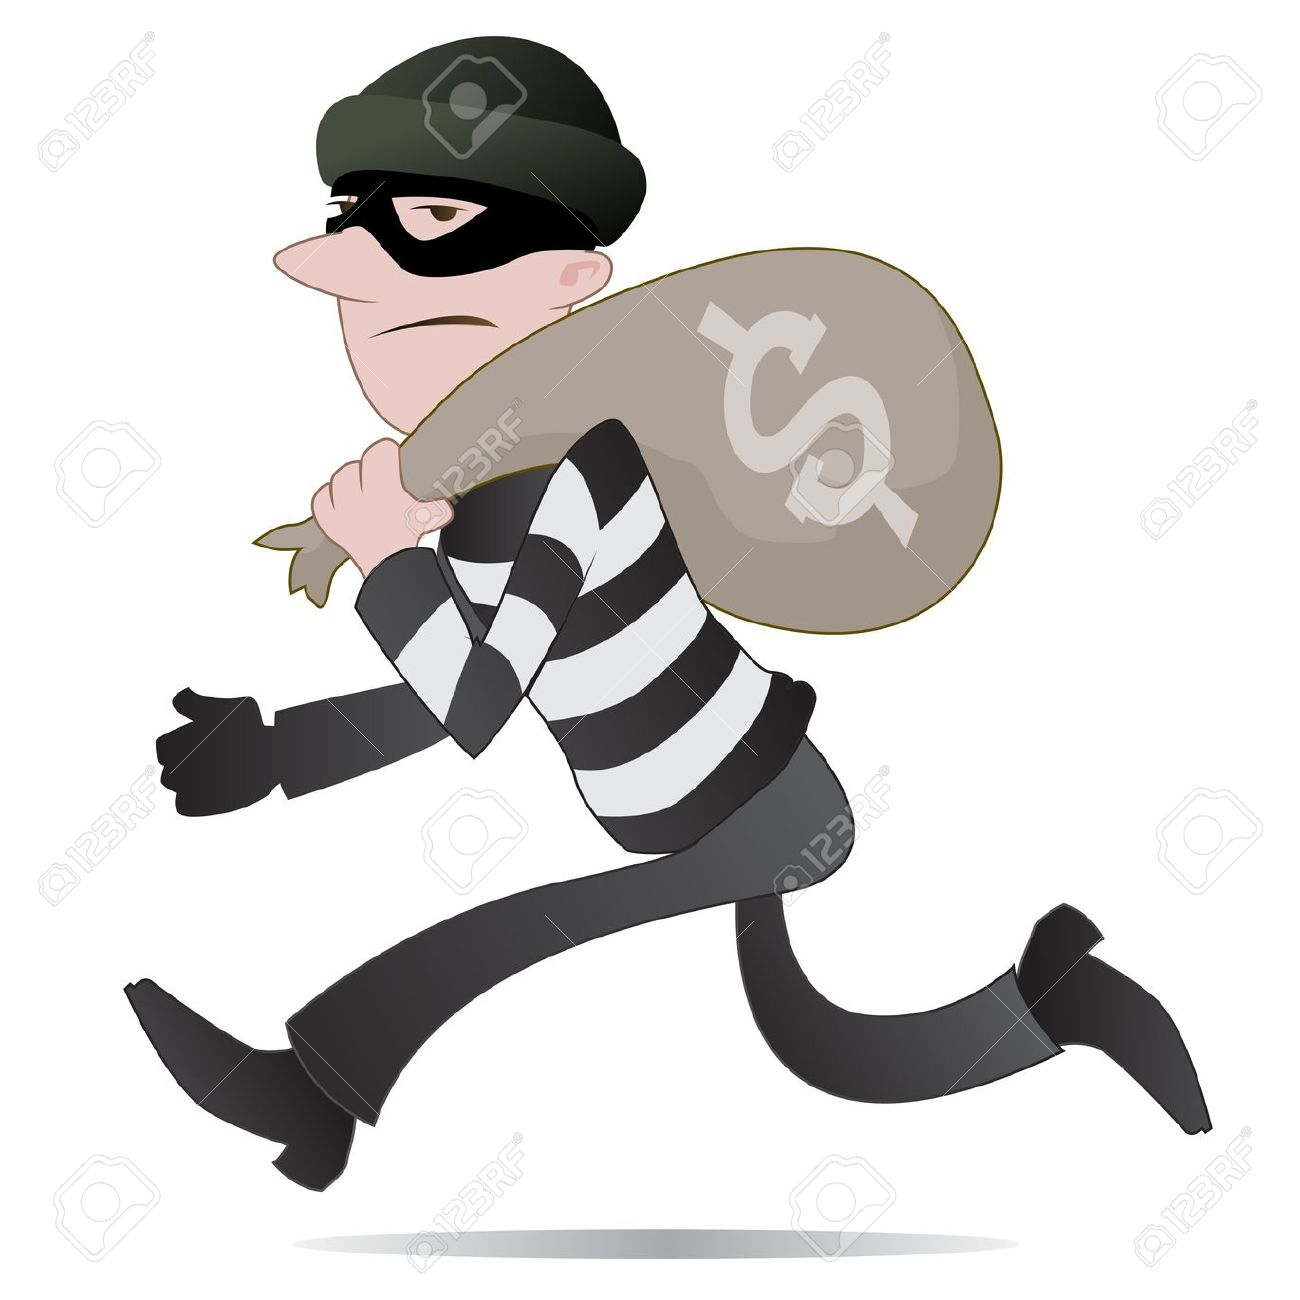 Robbers clipart png royalty free stock Robber Clipart – Sabines Kitchen png royalty free stock